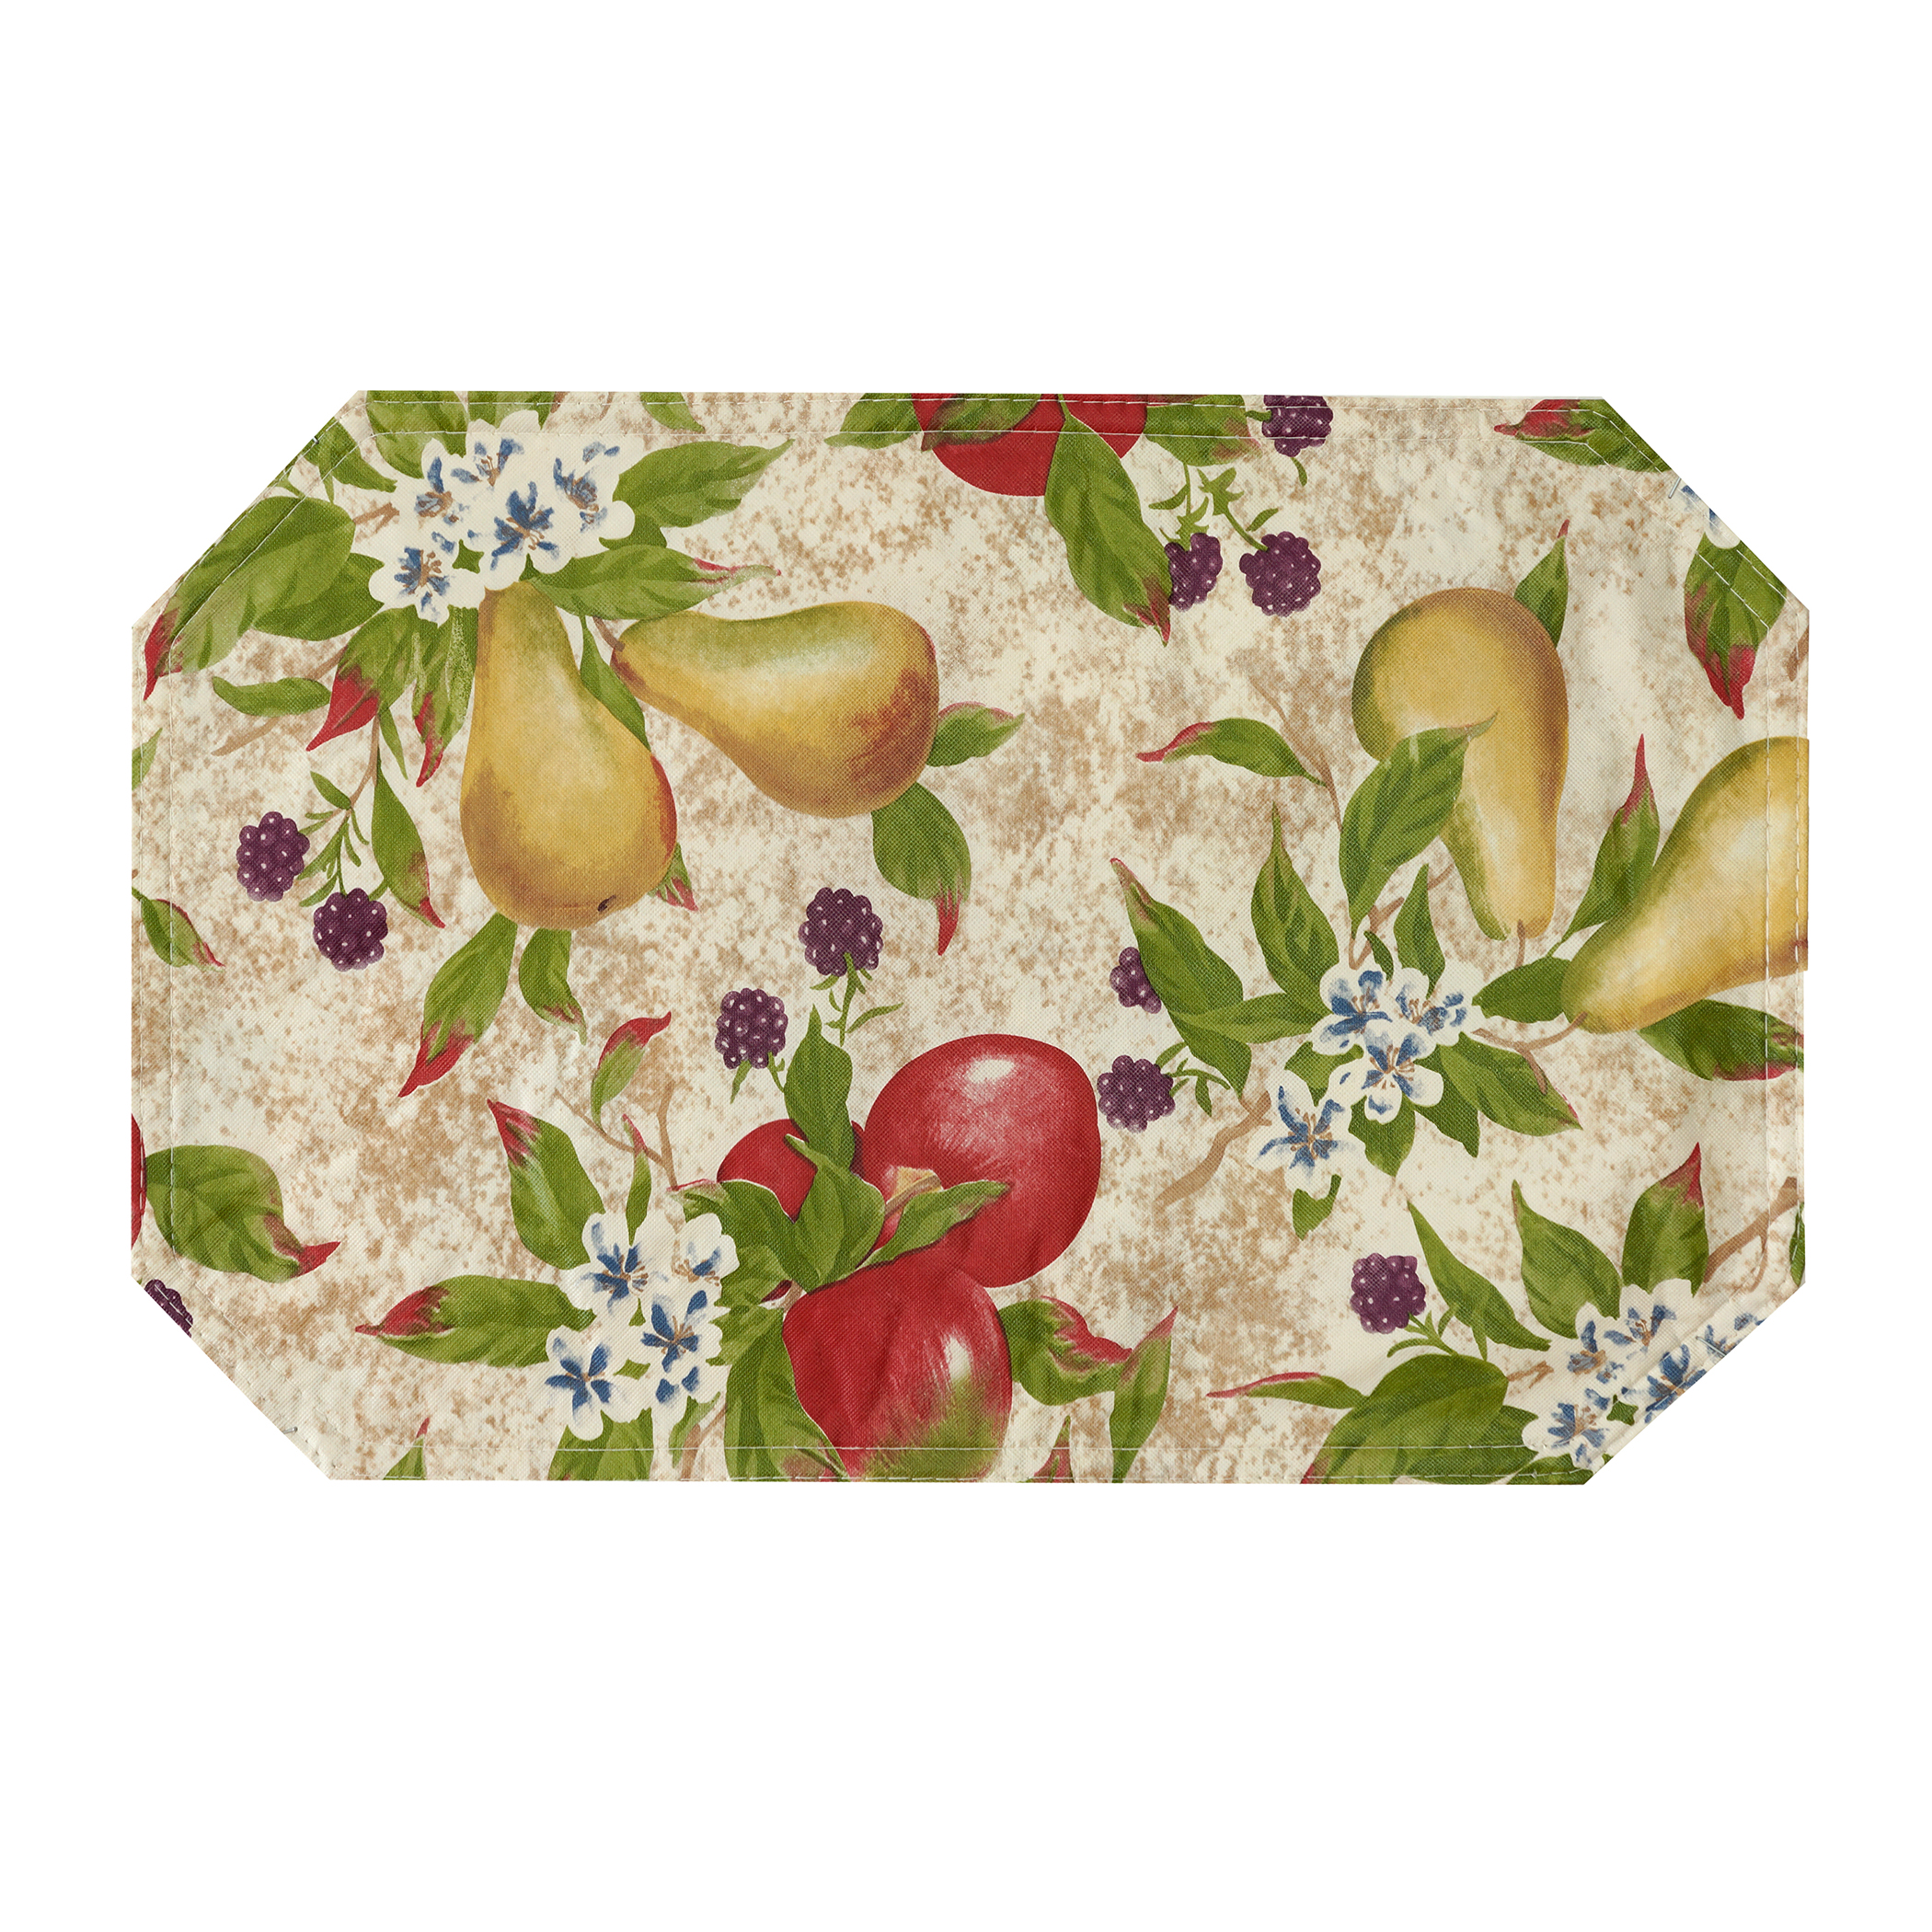 Orchard Fruits Vinyl Easy Care Reversible Placemat (Set of 12) by